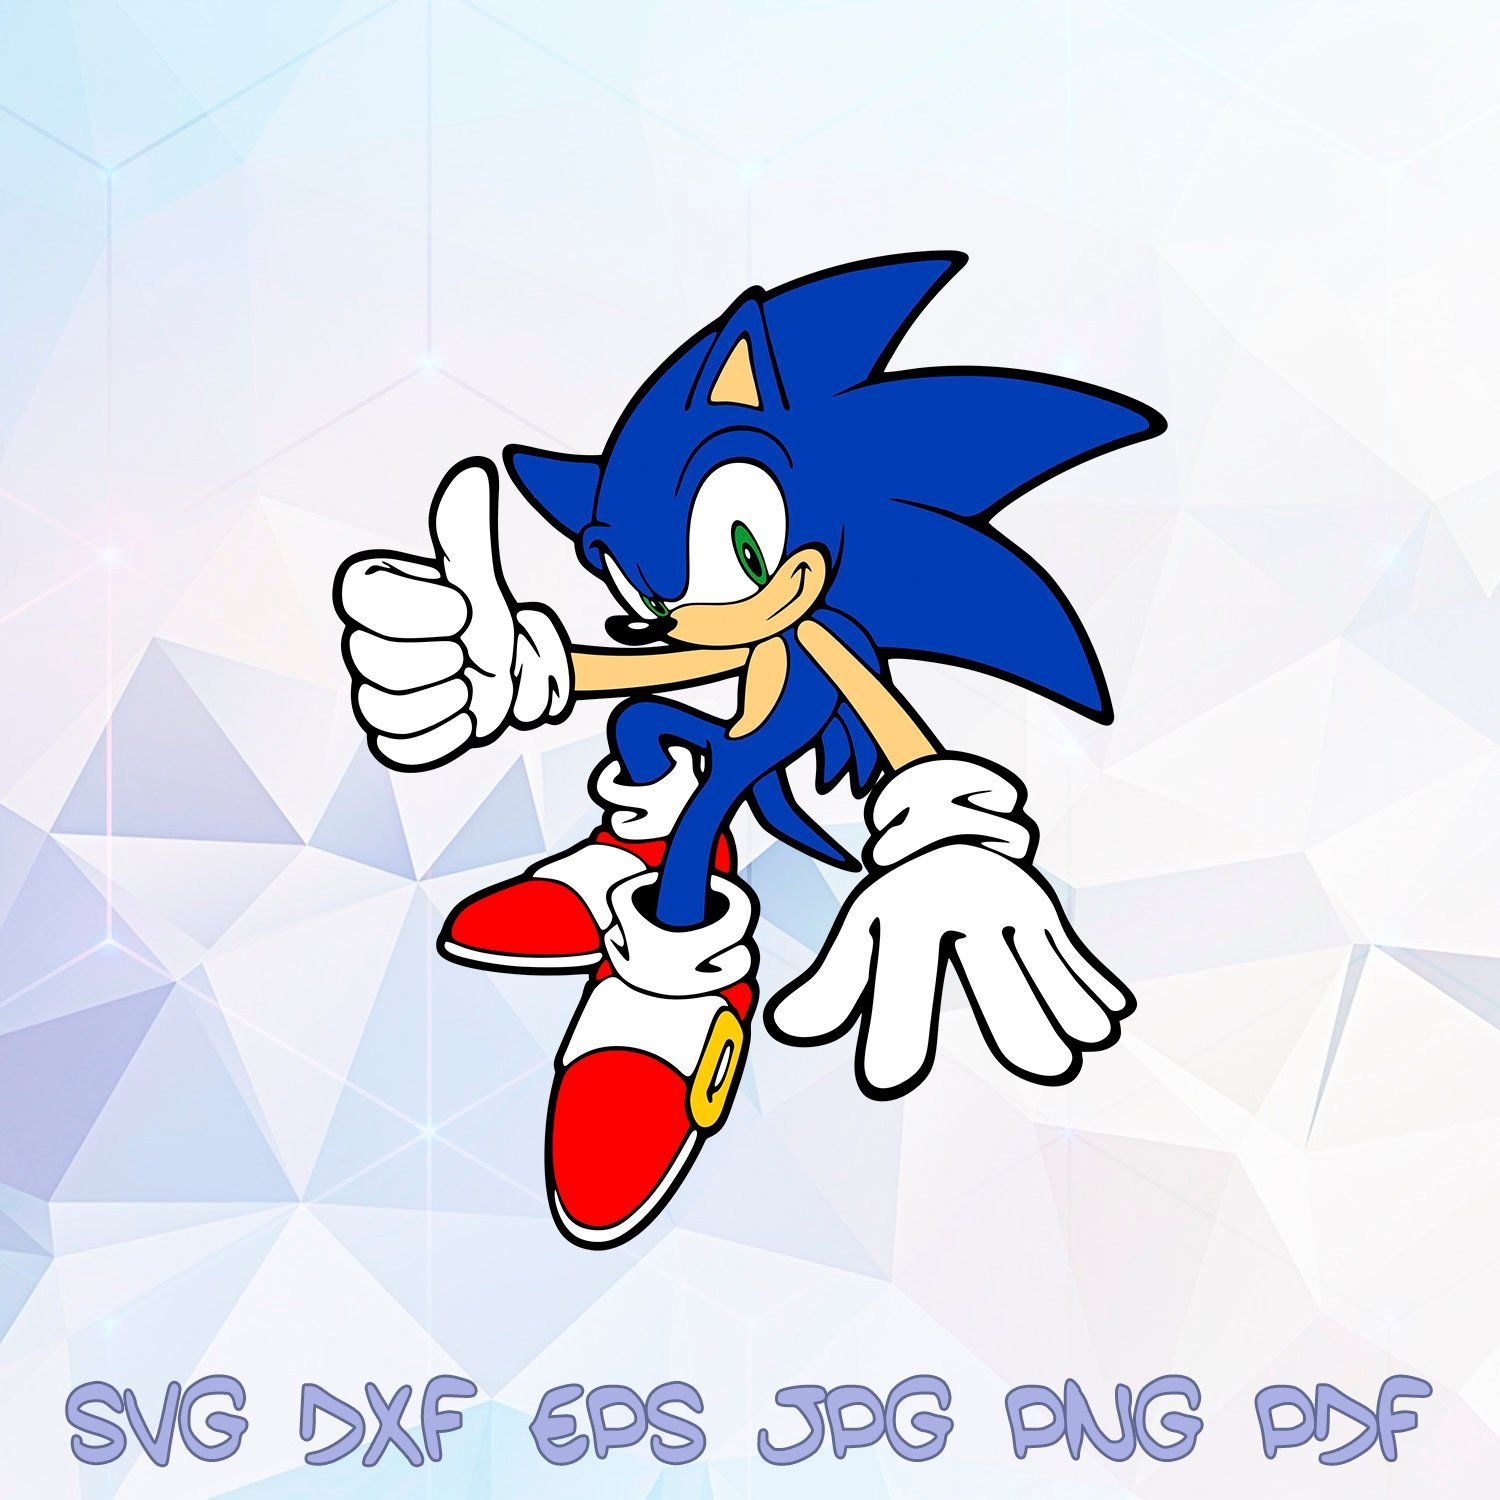 Sonic The Hedgehog Svg Thumbs Up Dxf Silhouette Cricut Birthday Party Supplies Decorations Templates Paper Crafts Iron On Transfer Clipart